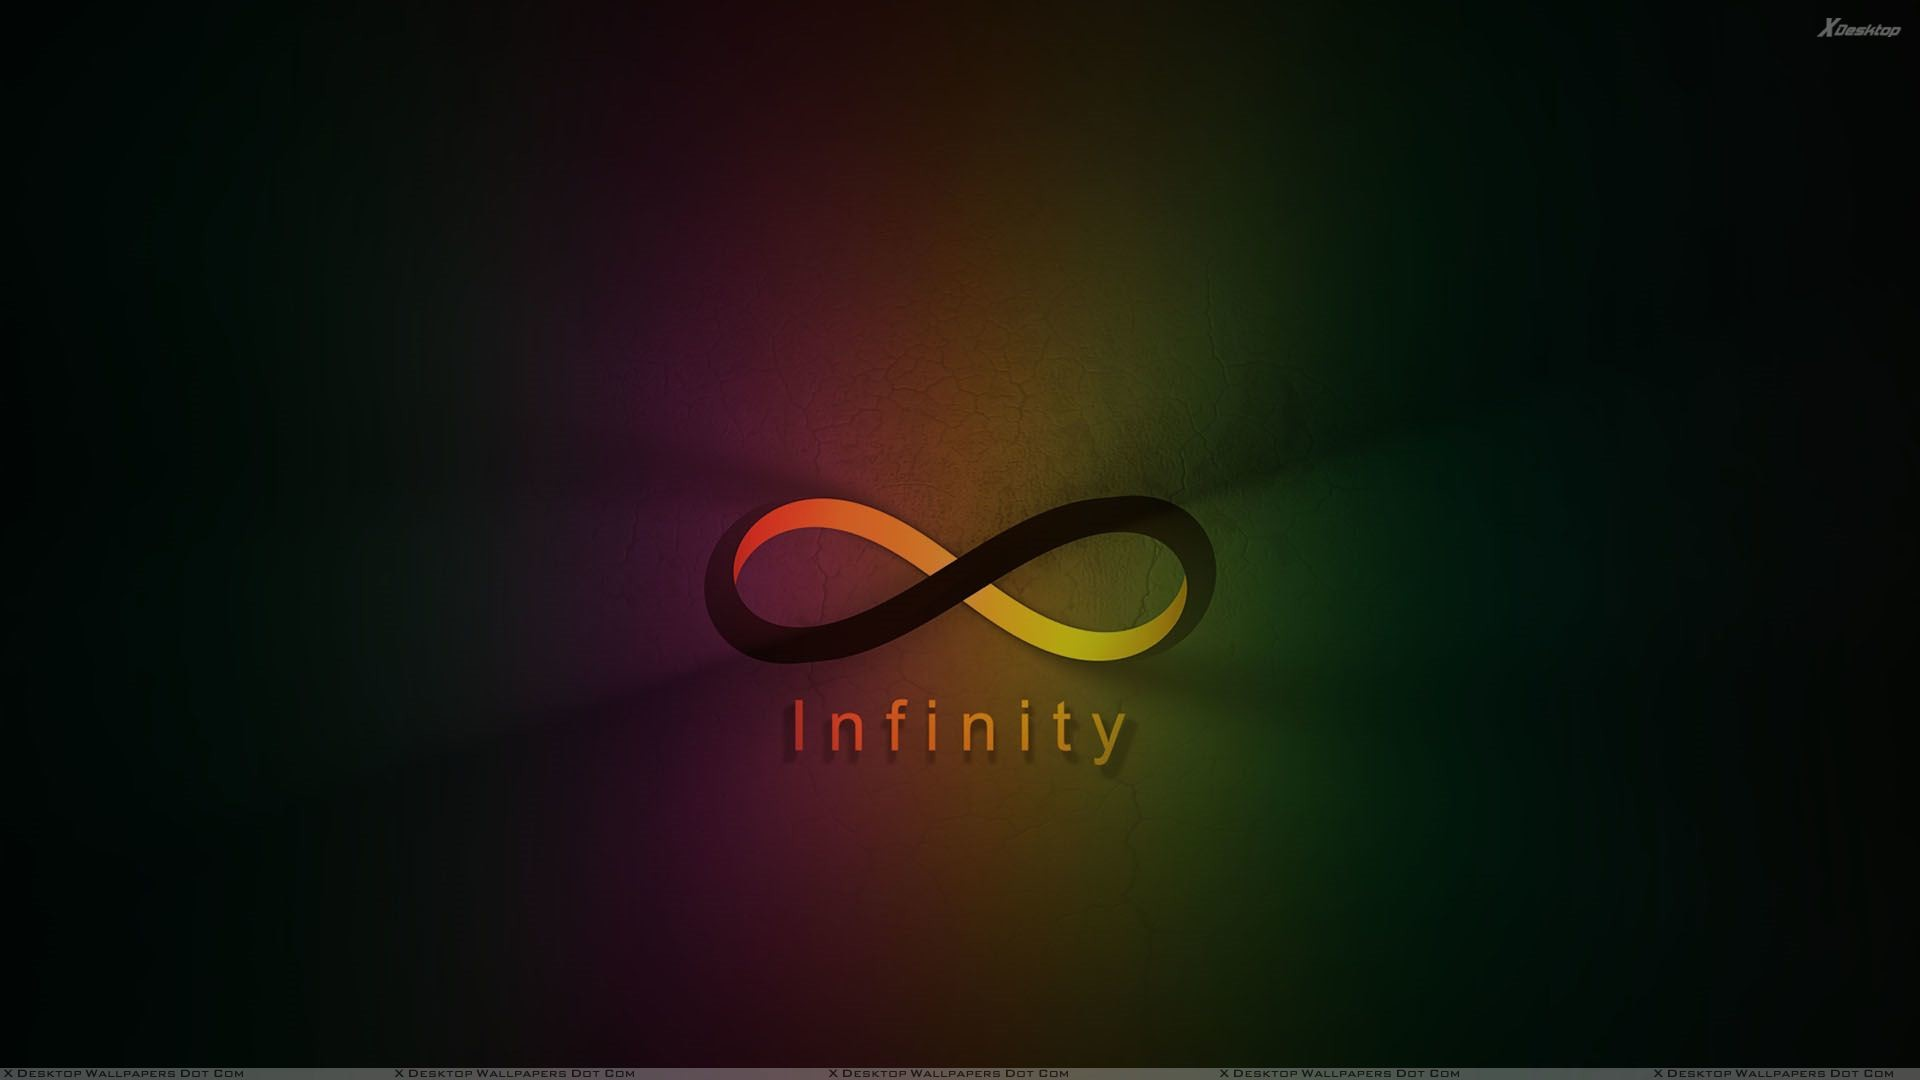 Cute Infinity Wallpaper: Cute Infinity Wallpaper (60+ Images